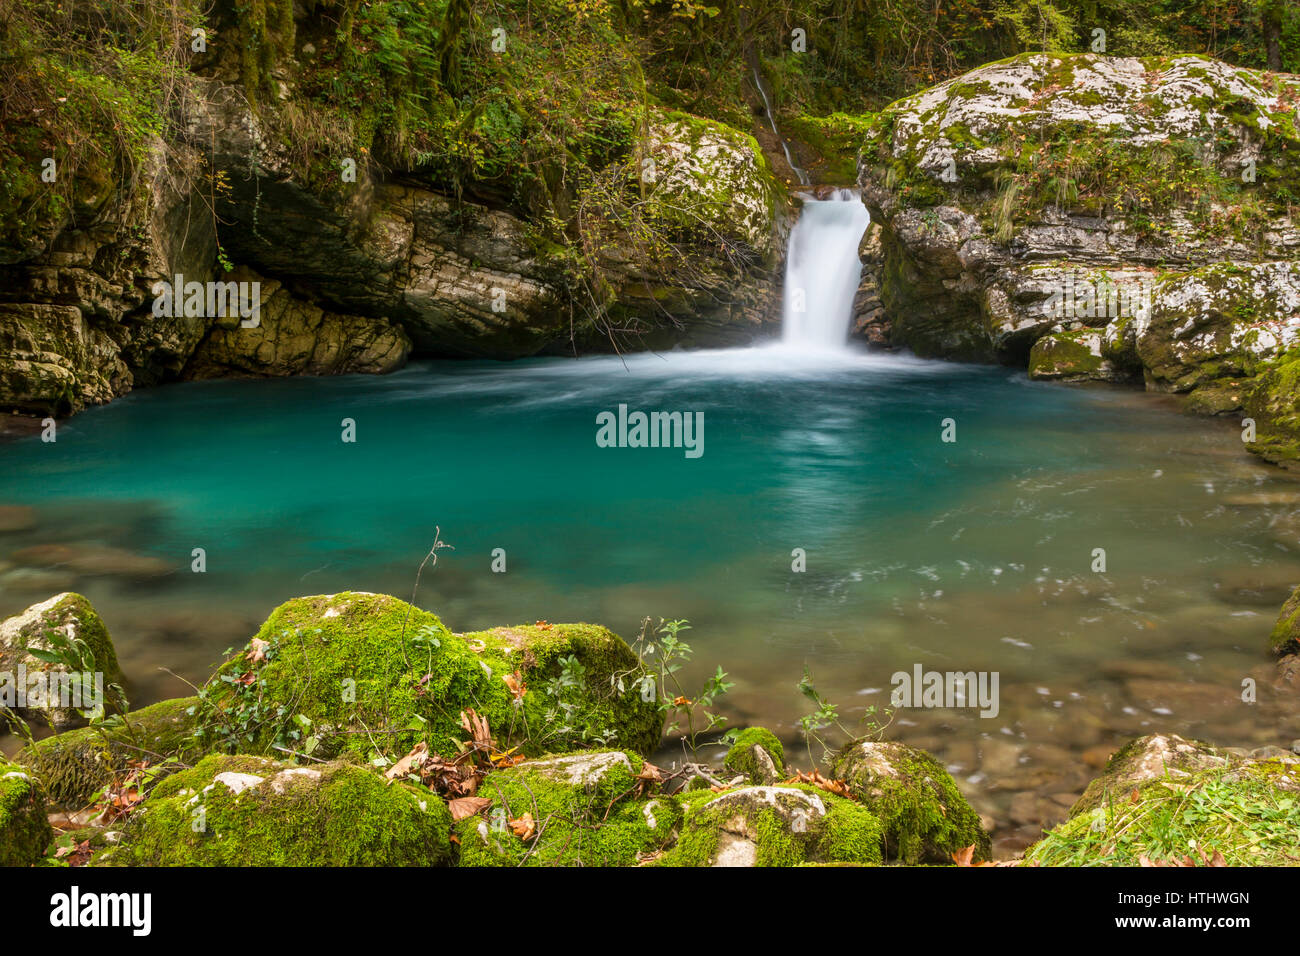 A small pond and a waterfall in the gorge Stavraetos, in Tzoumerka region, Epirus, Greece. - Stock Image